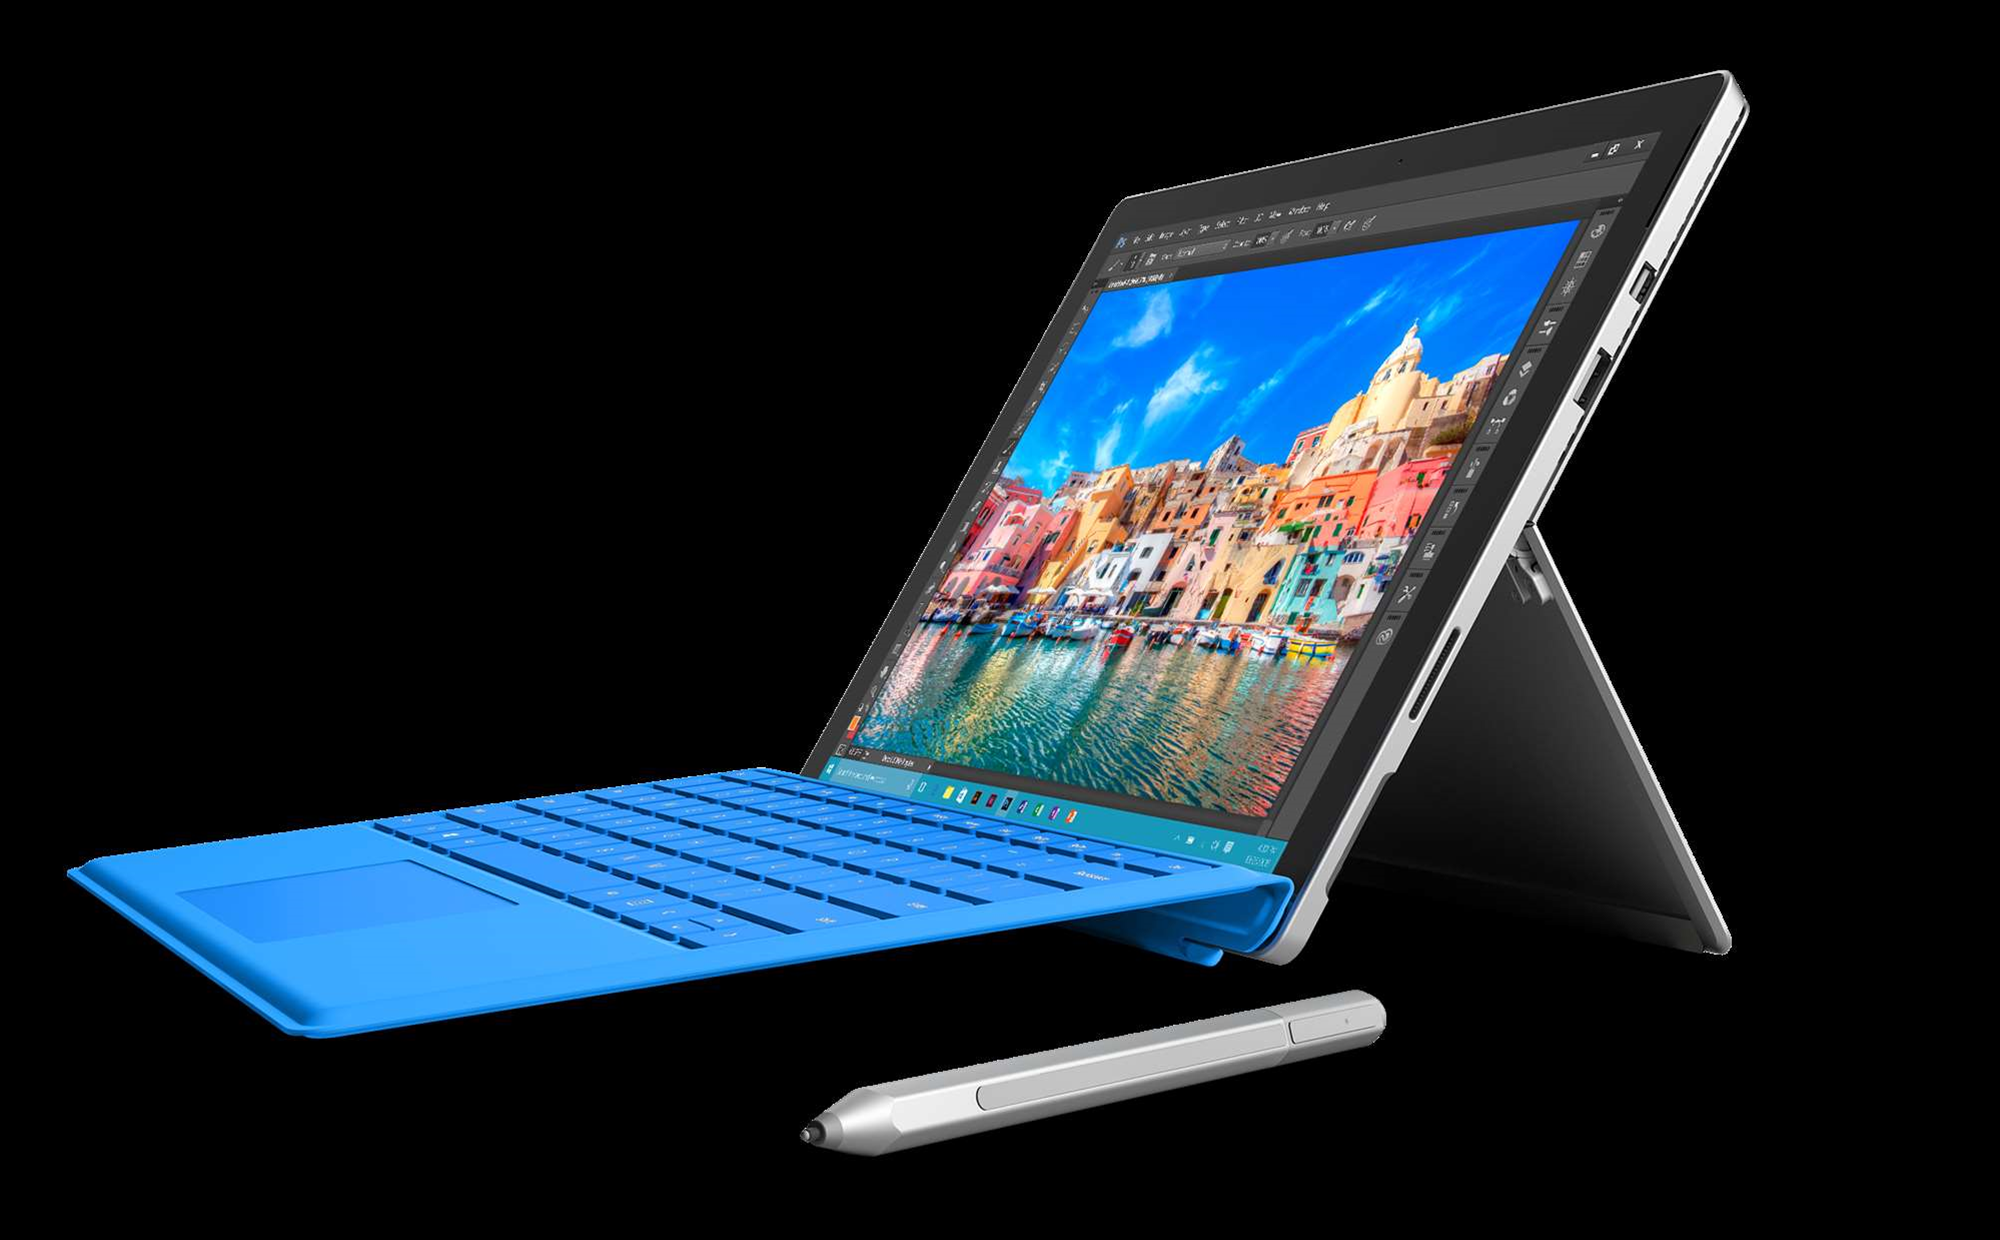 Meet the Surface Pro 4